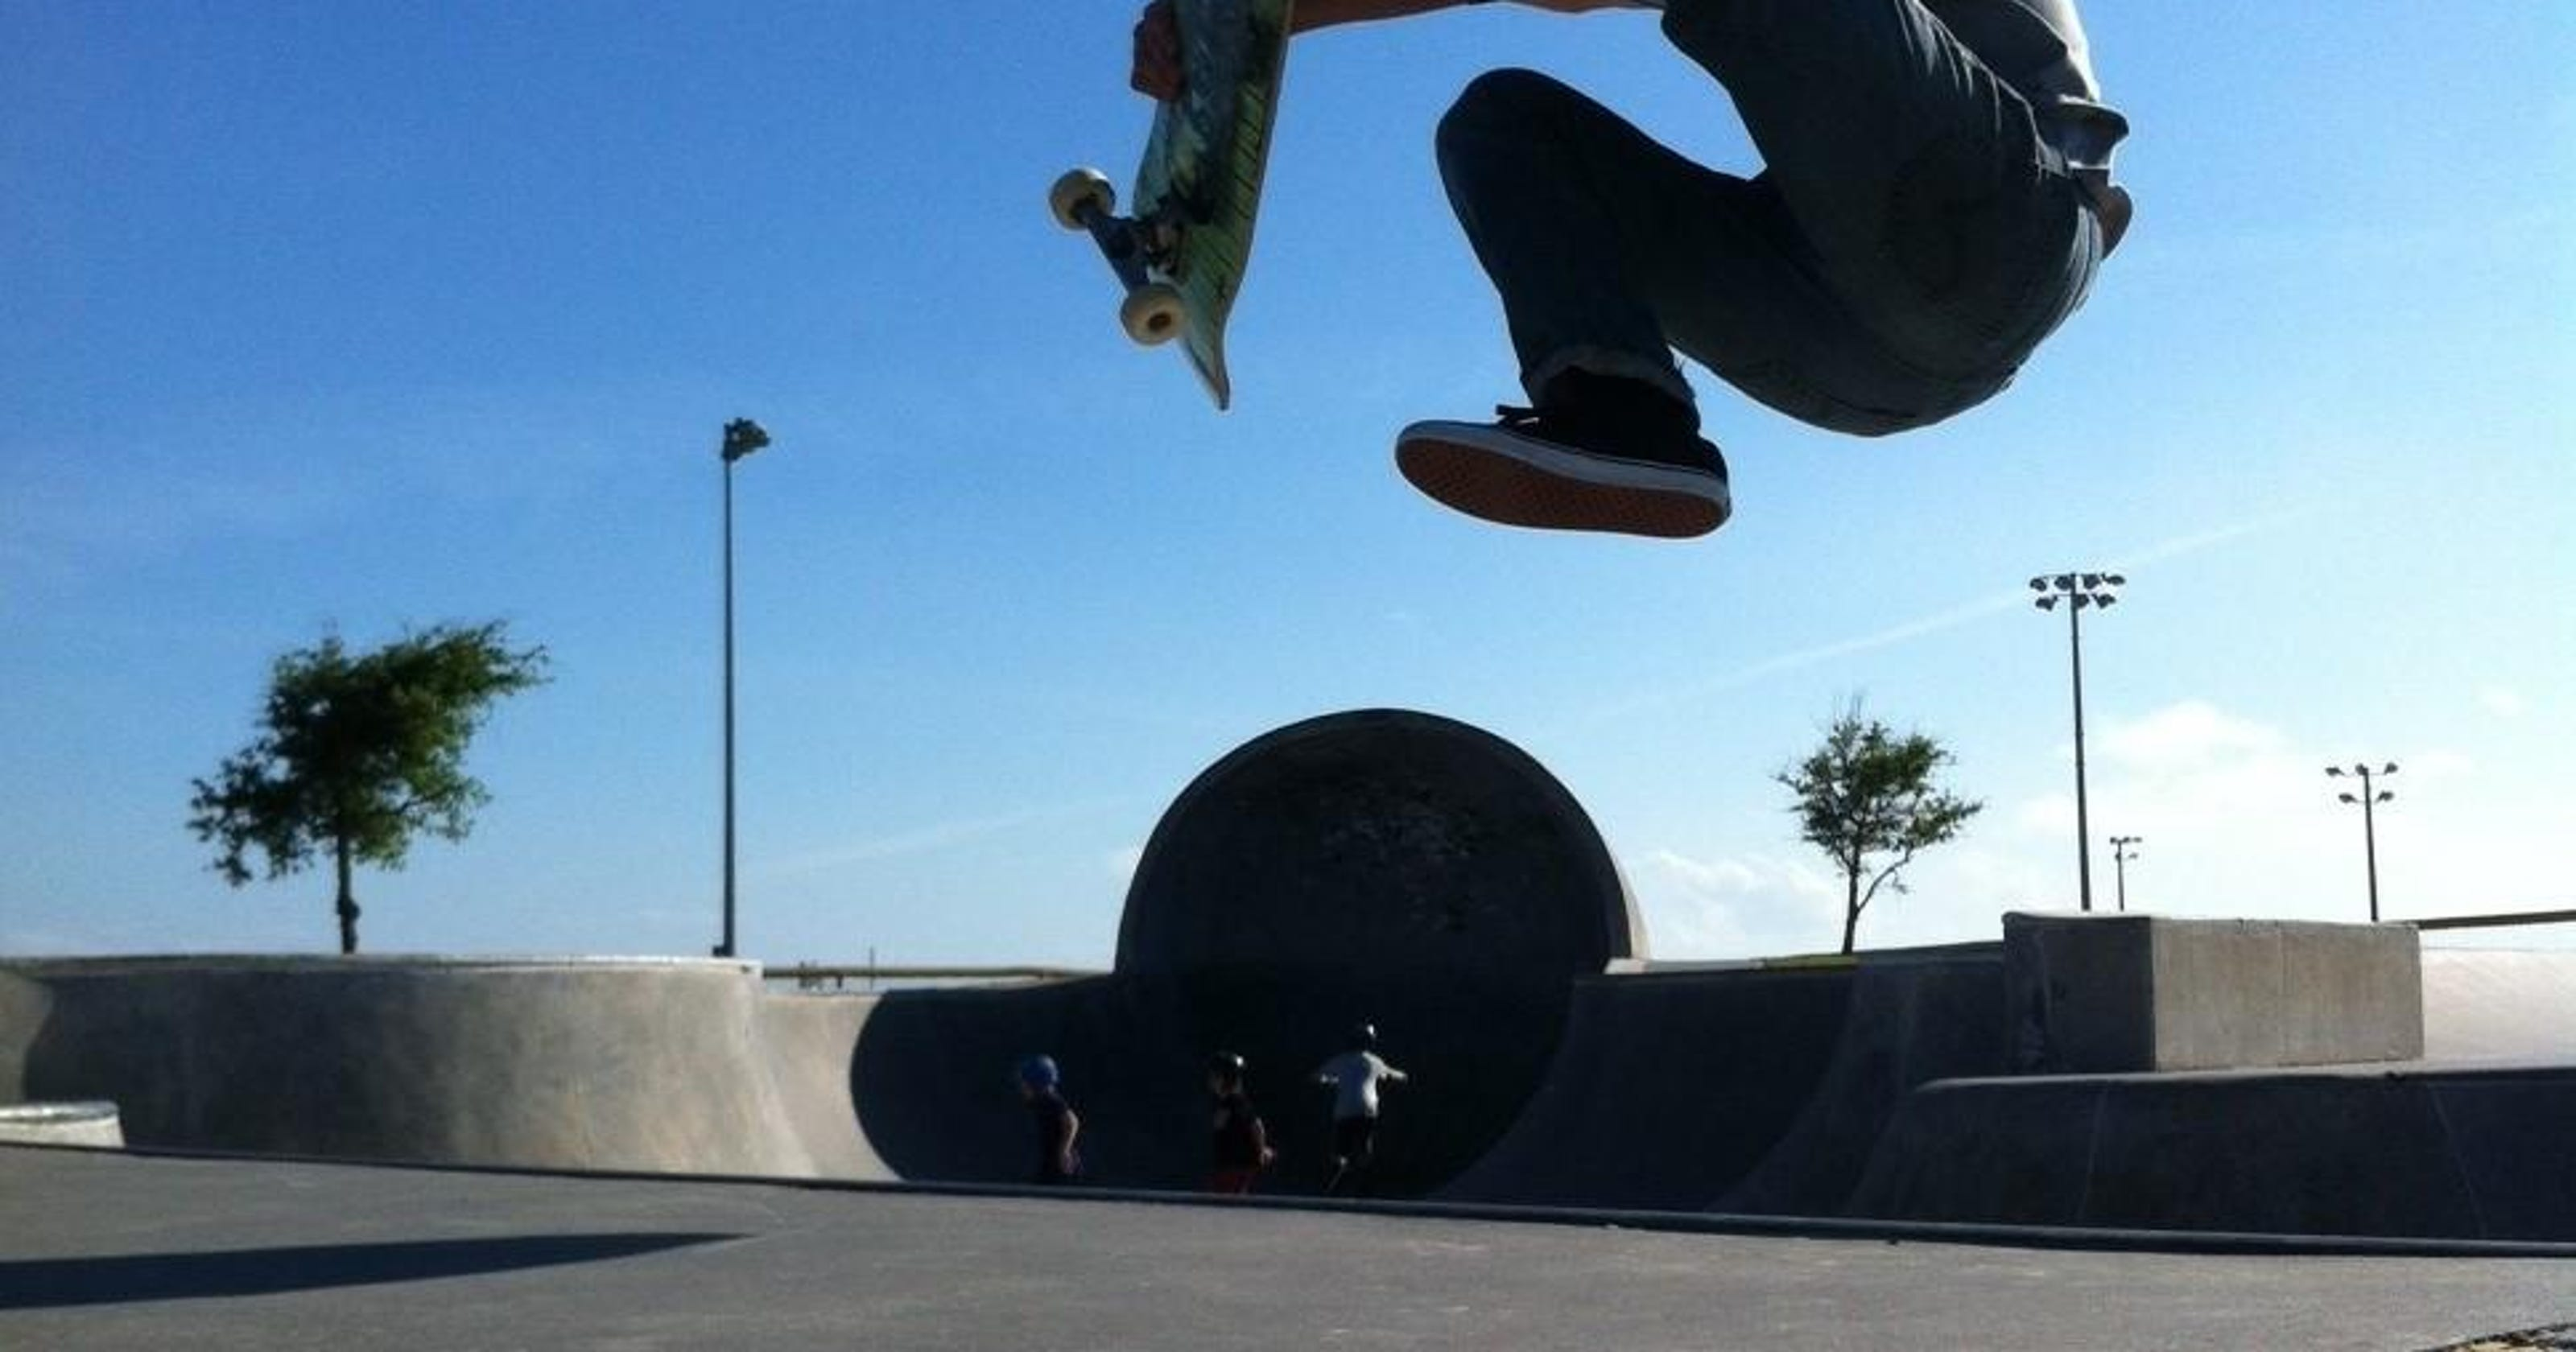 Skateboarders' $5,000 contest reset for Sunday